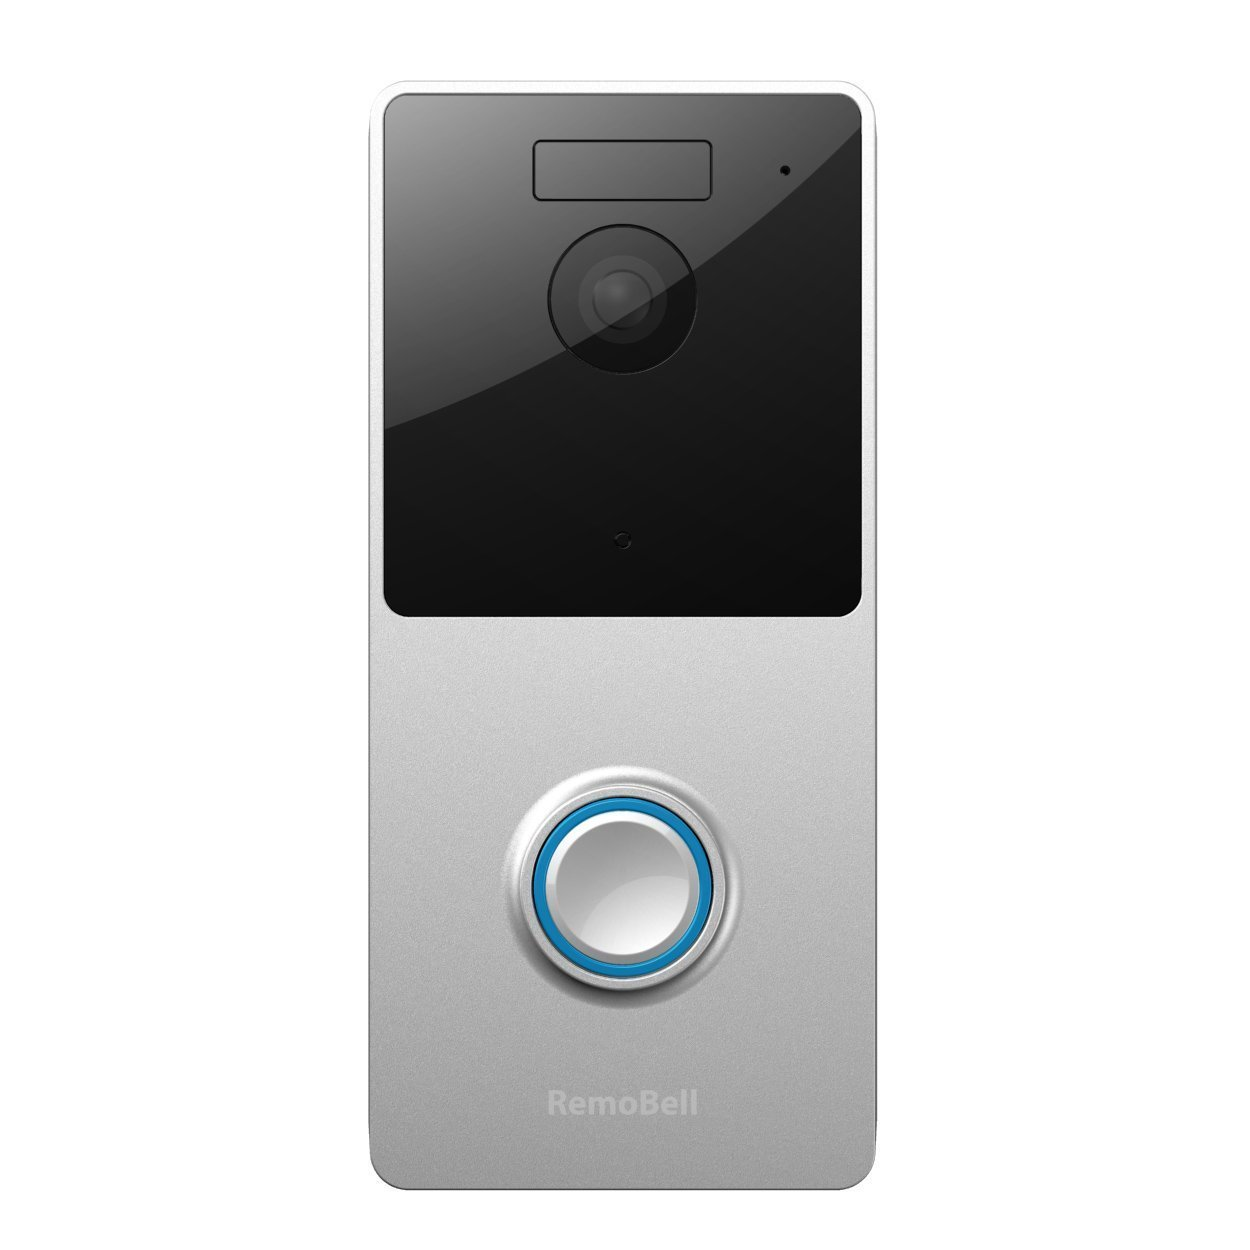 Remo RMB1M Wi-Fi Wireless Video Doorbell by remo%2B